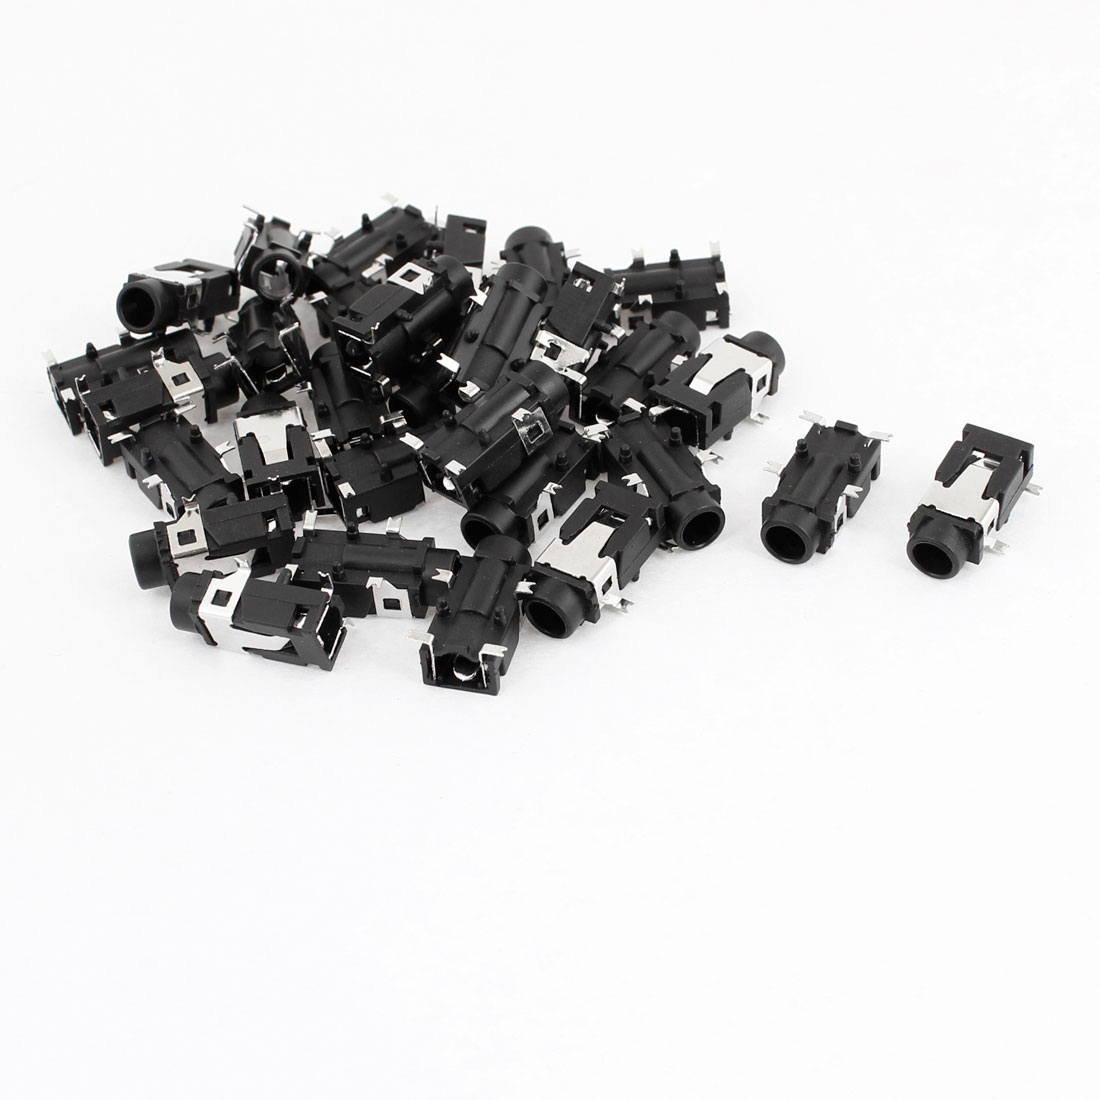 30 Pcs Audio 3.5mm 4 Pin Stereo Jack Panel Mount PCB Connector Black